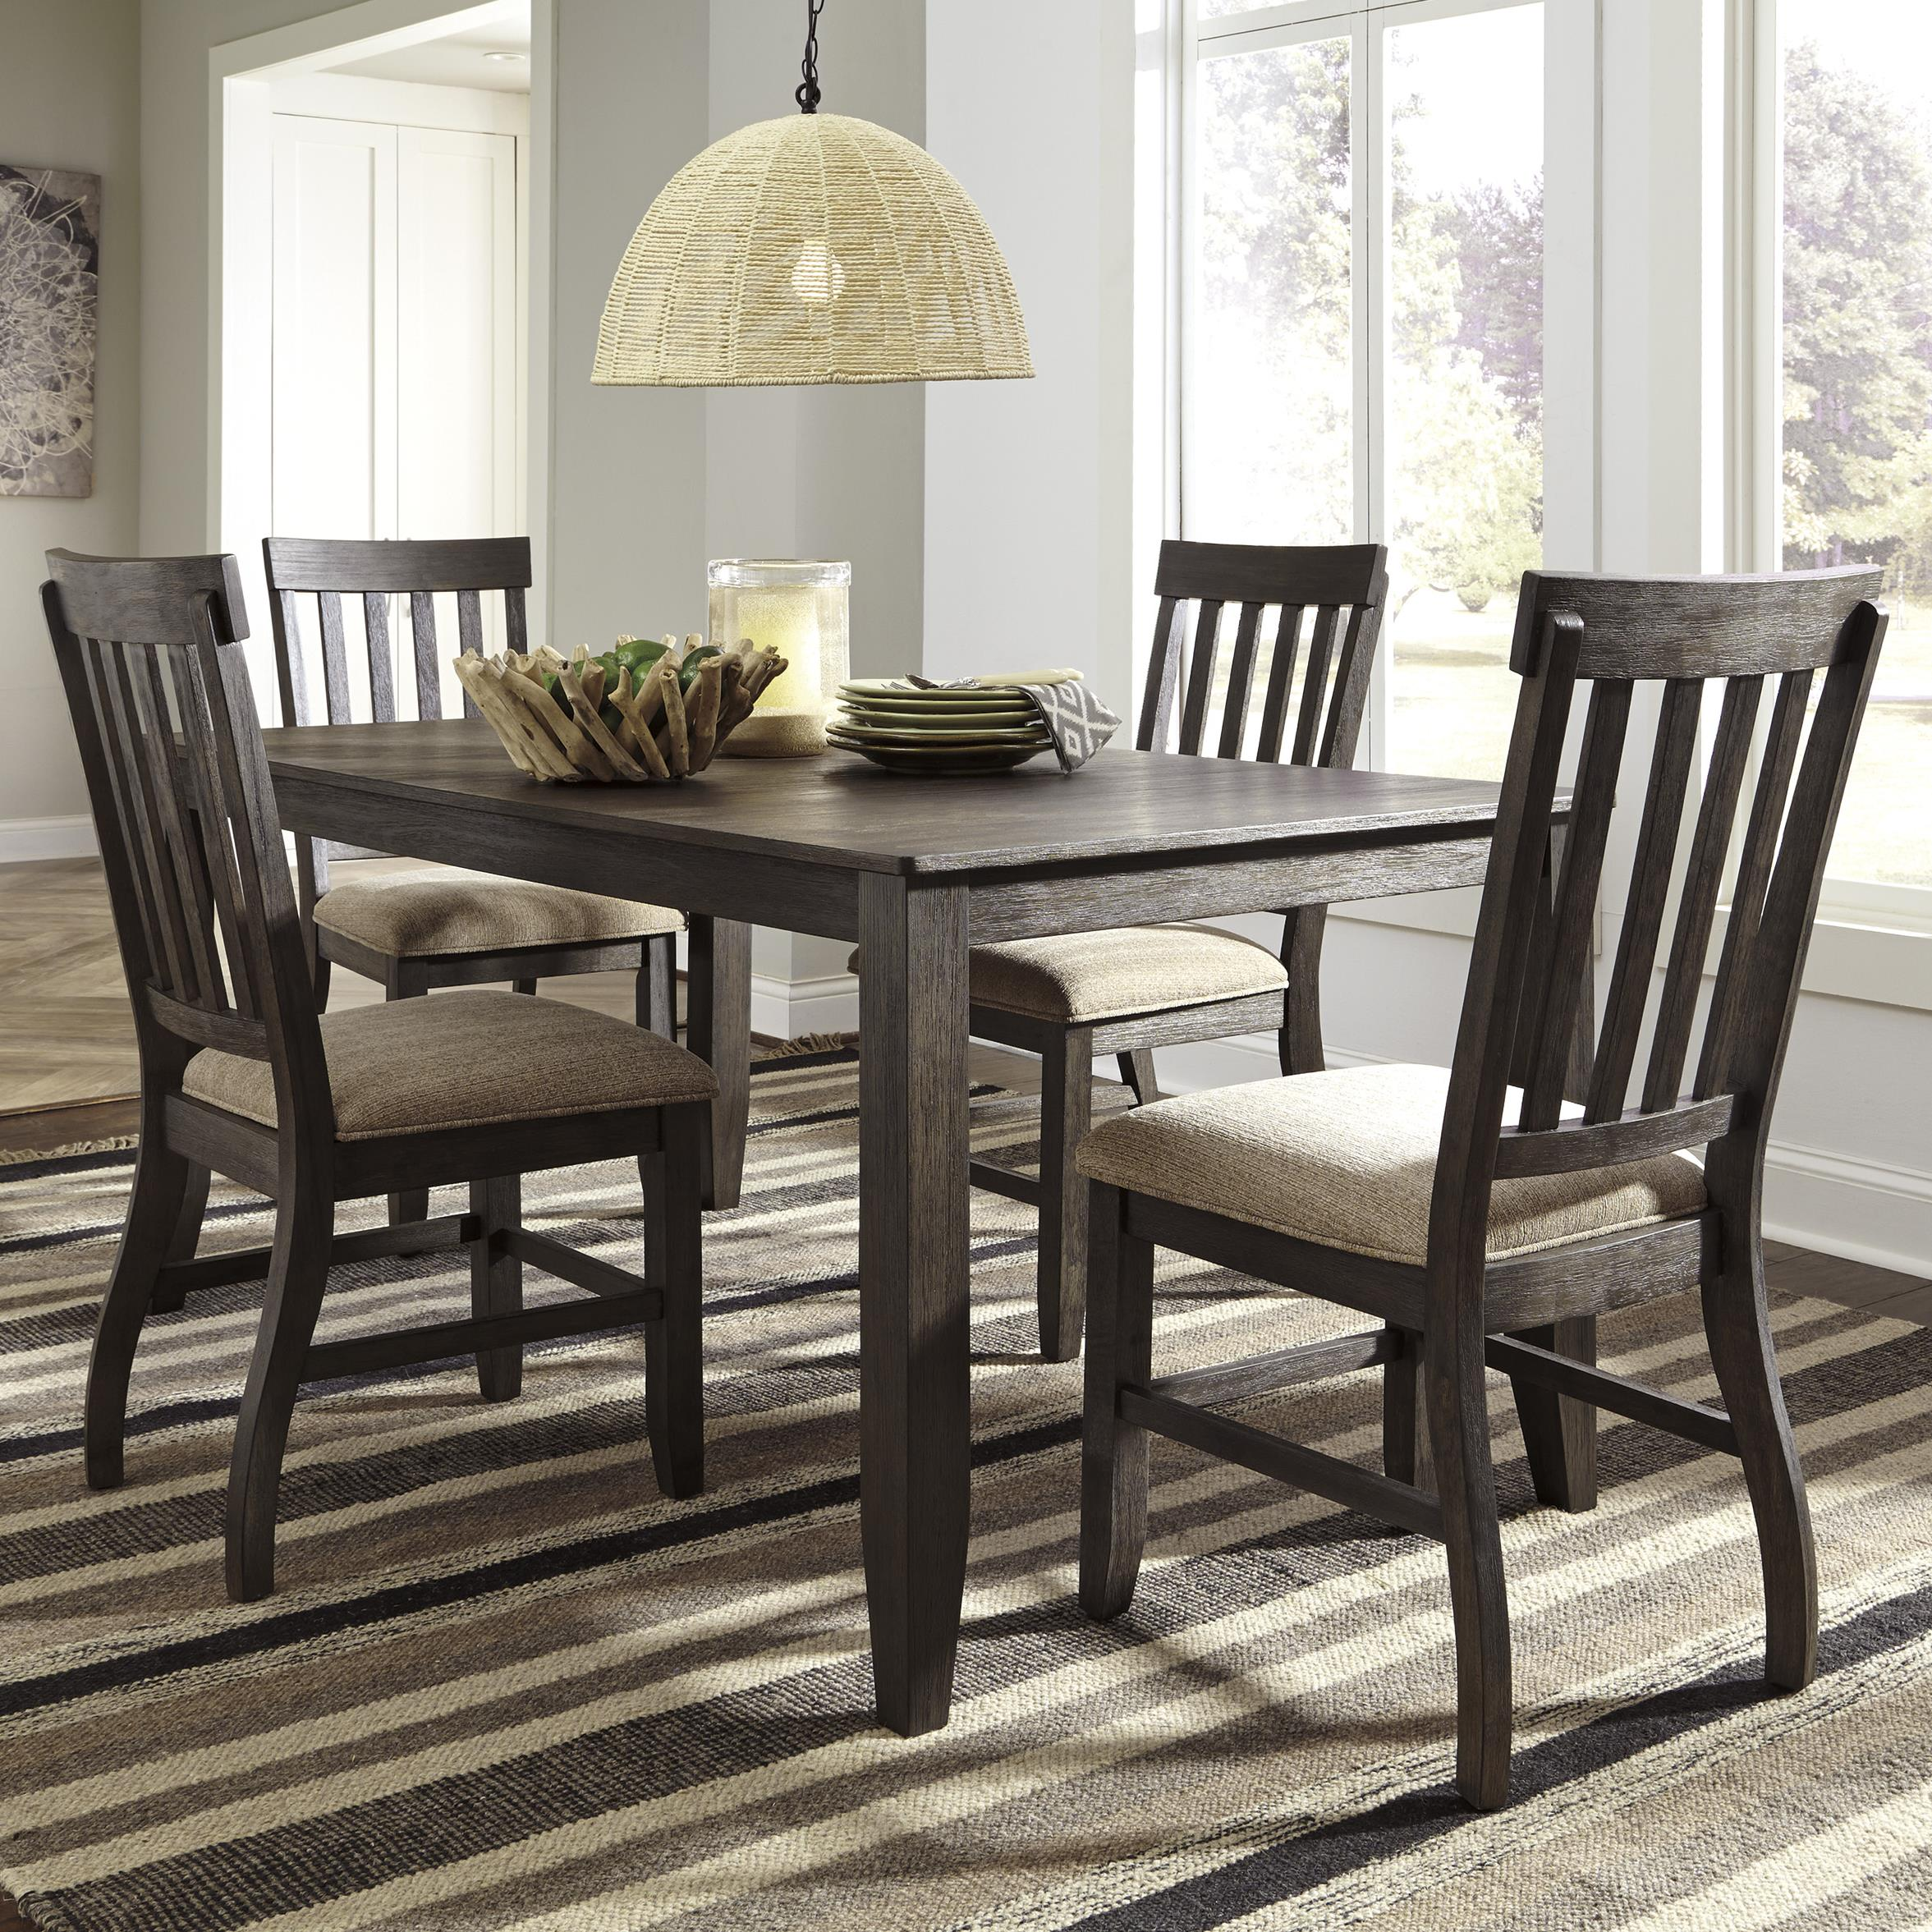 Signature Design By Ashley Dresbar 5 Piece Rectangular Dining Table Set    Item Number: